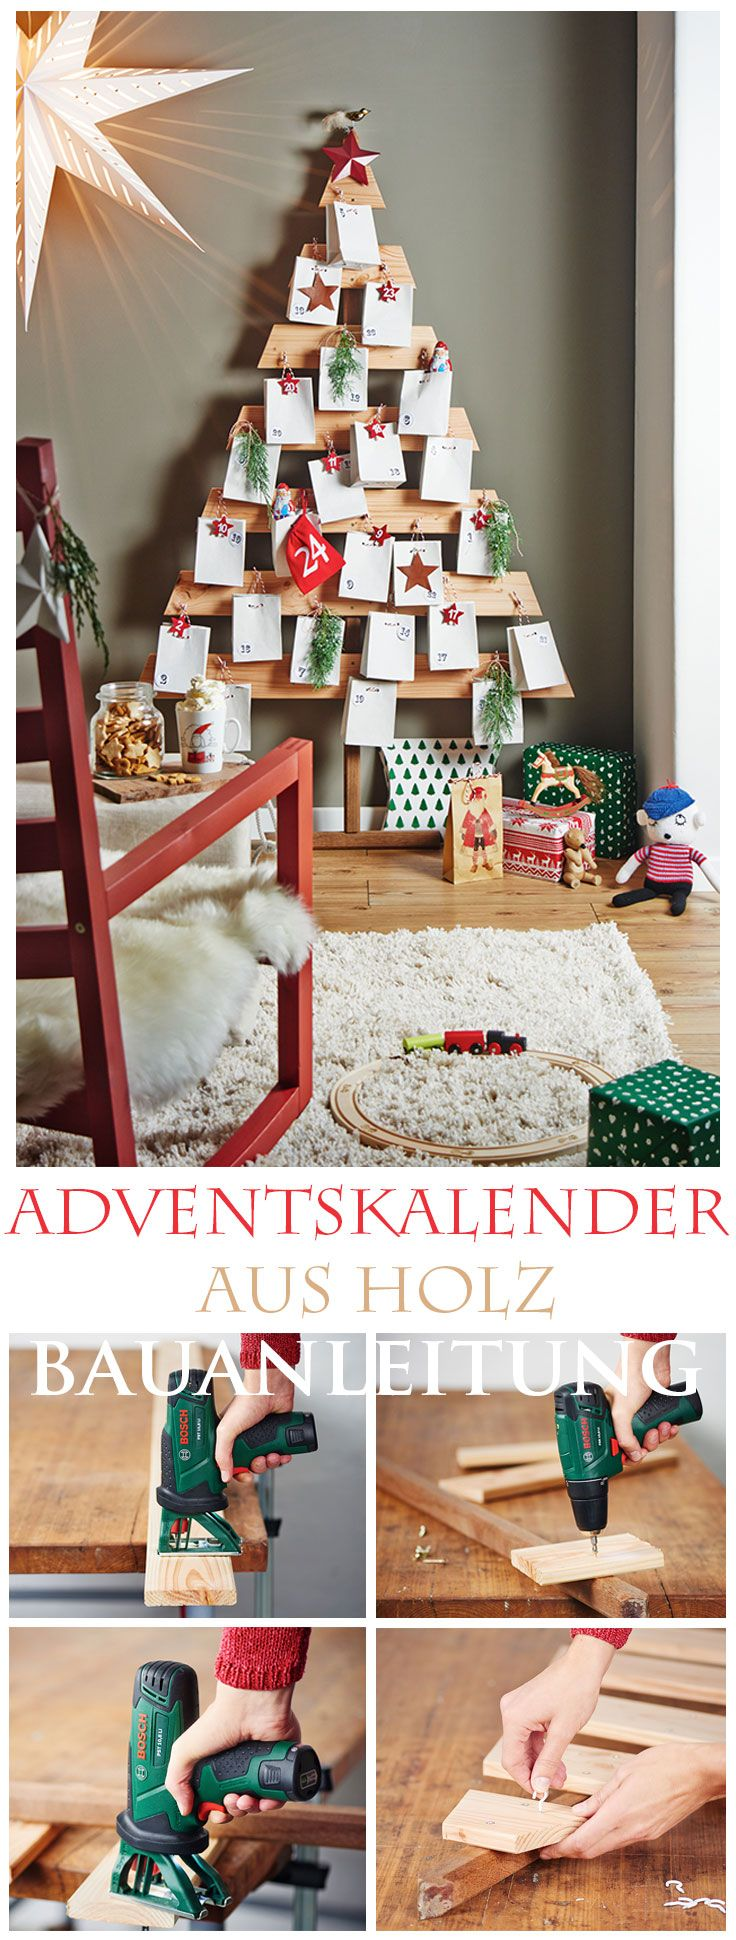 die besten 17 ideen zu adventskalender holz auf pinterest. Black Bedroom Furniture Sets. Home Design Ideas